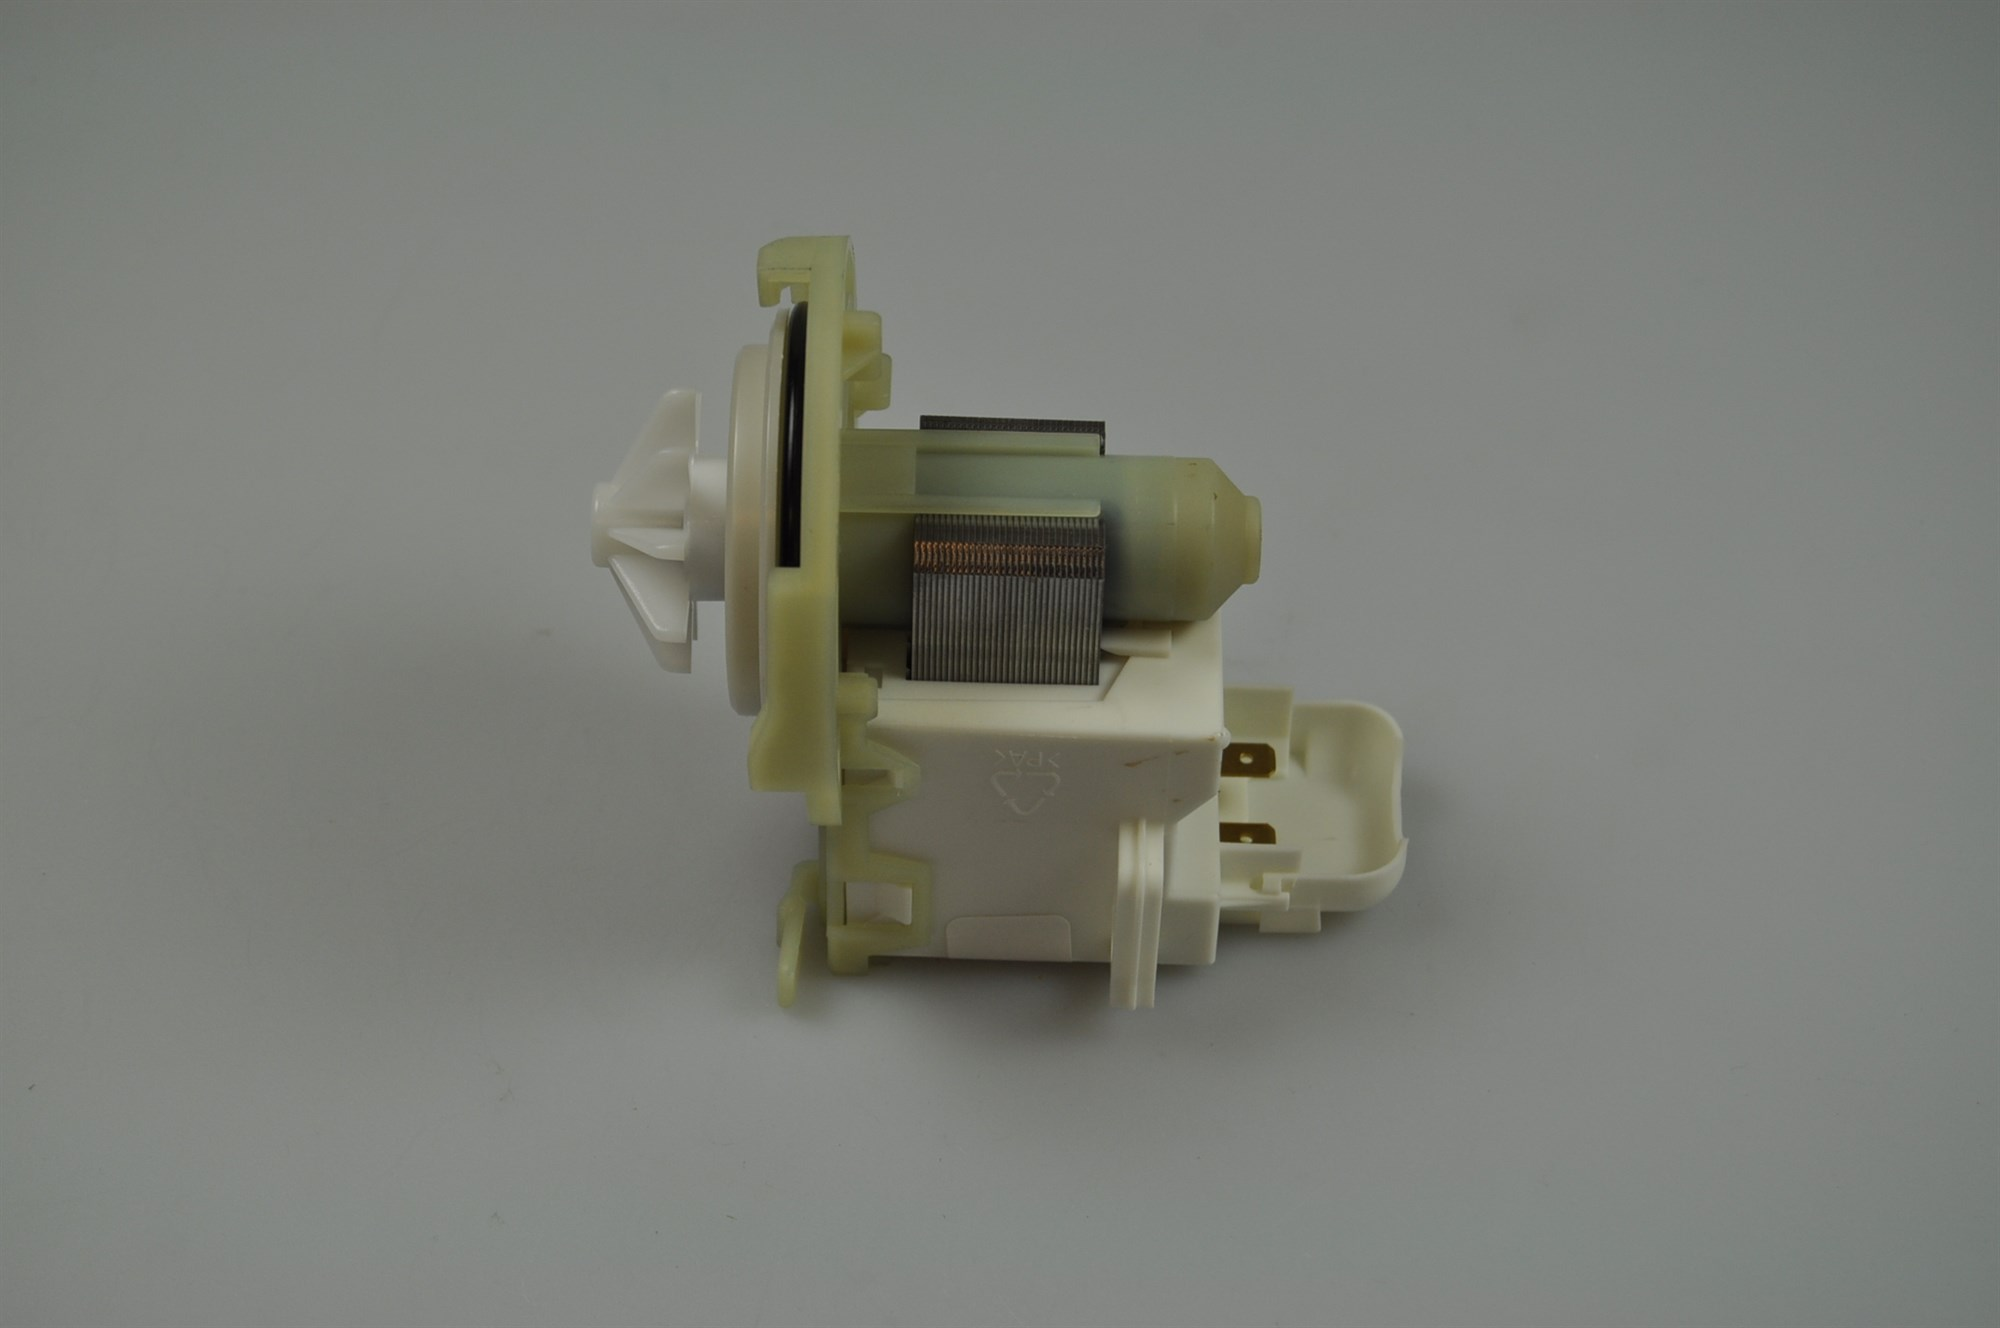 Drain pump bosch dishwasher - Bosch dishwasher pump not draining ...